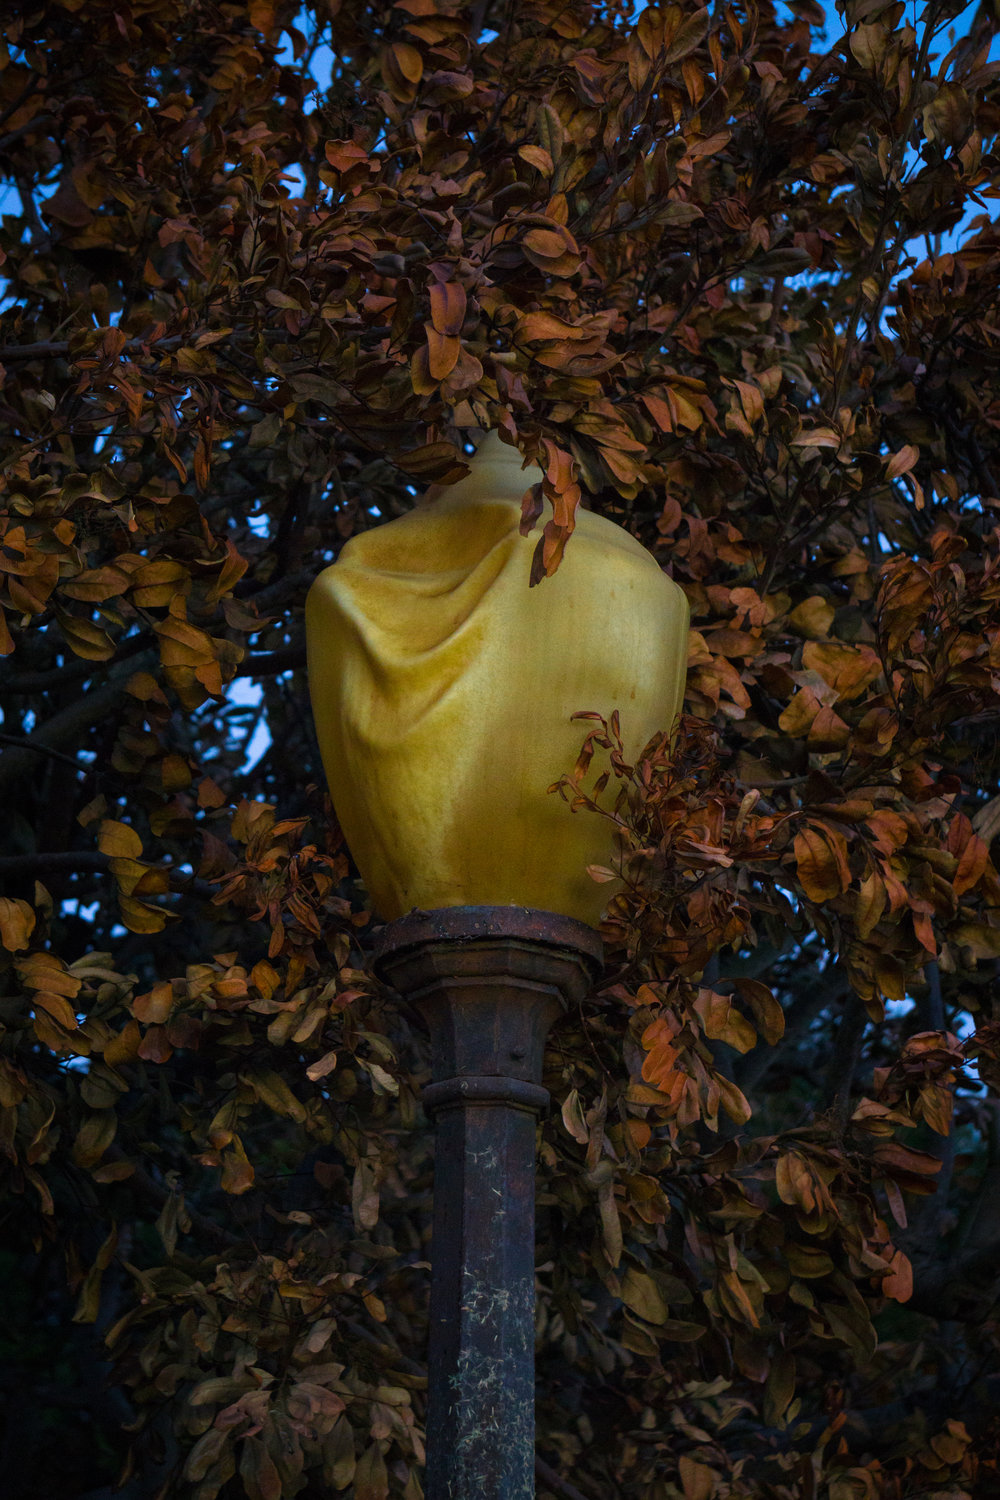 This was one of the more surreal things that I saw. A streetlight among roasted leaves just melted from the heat.